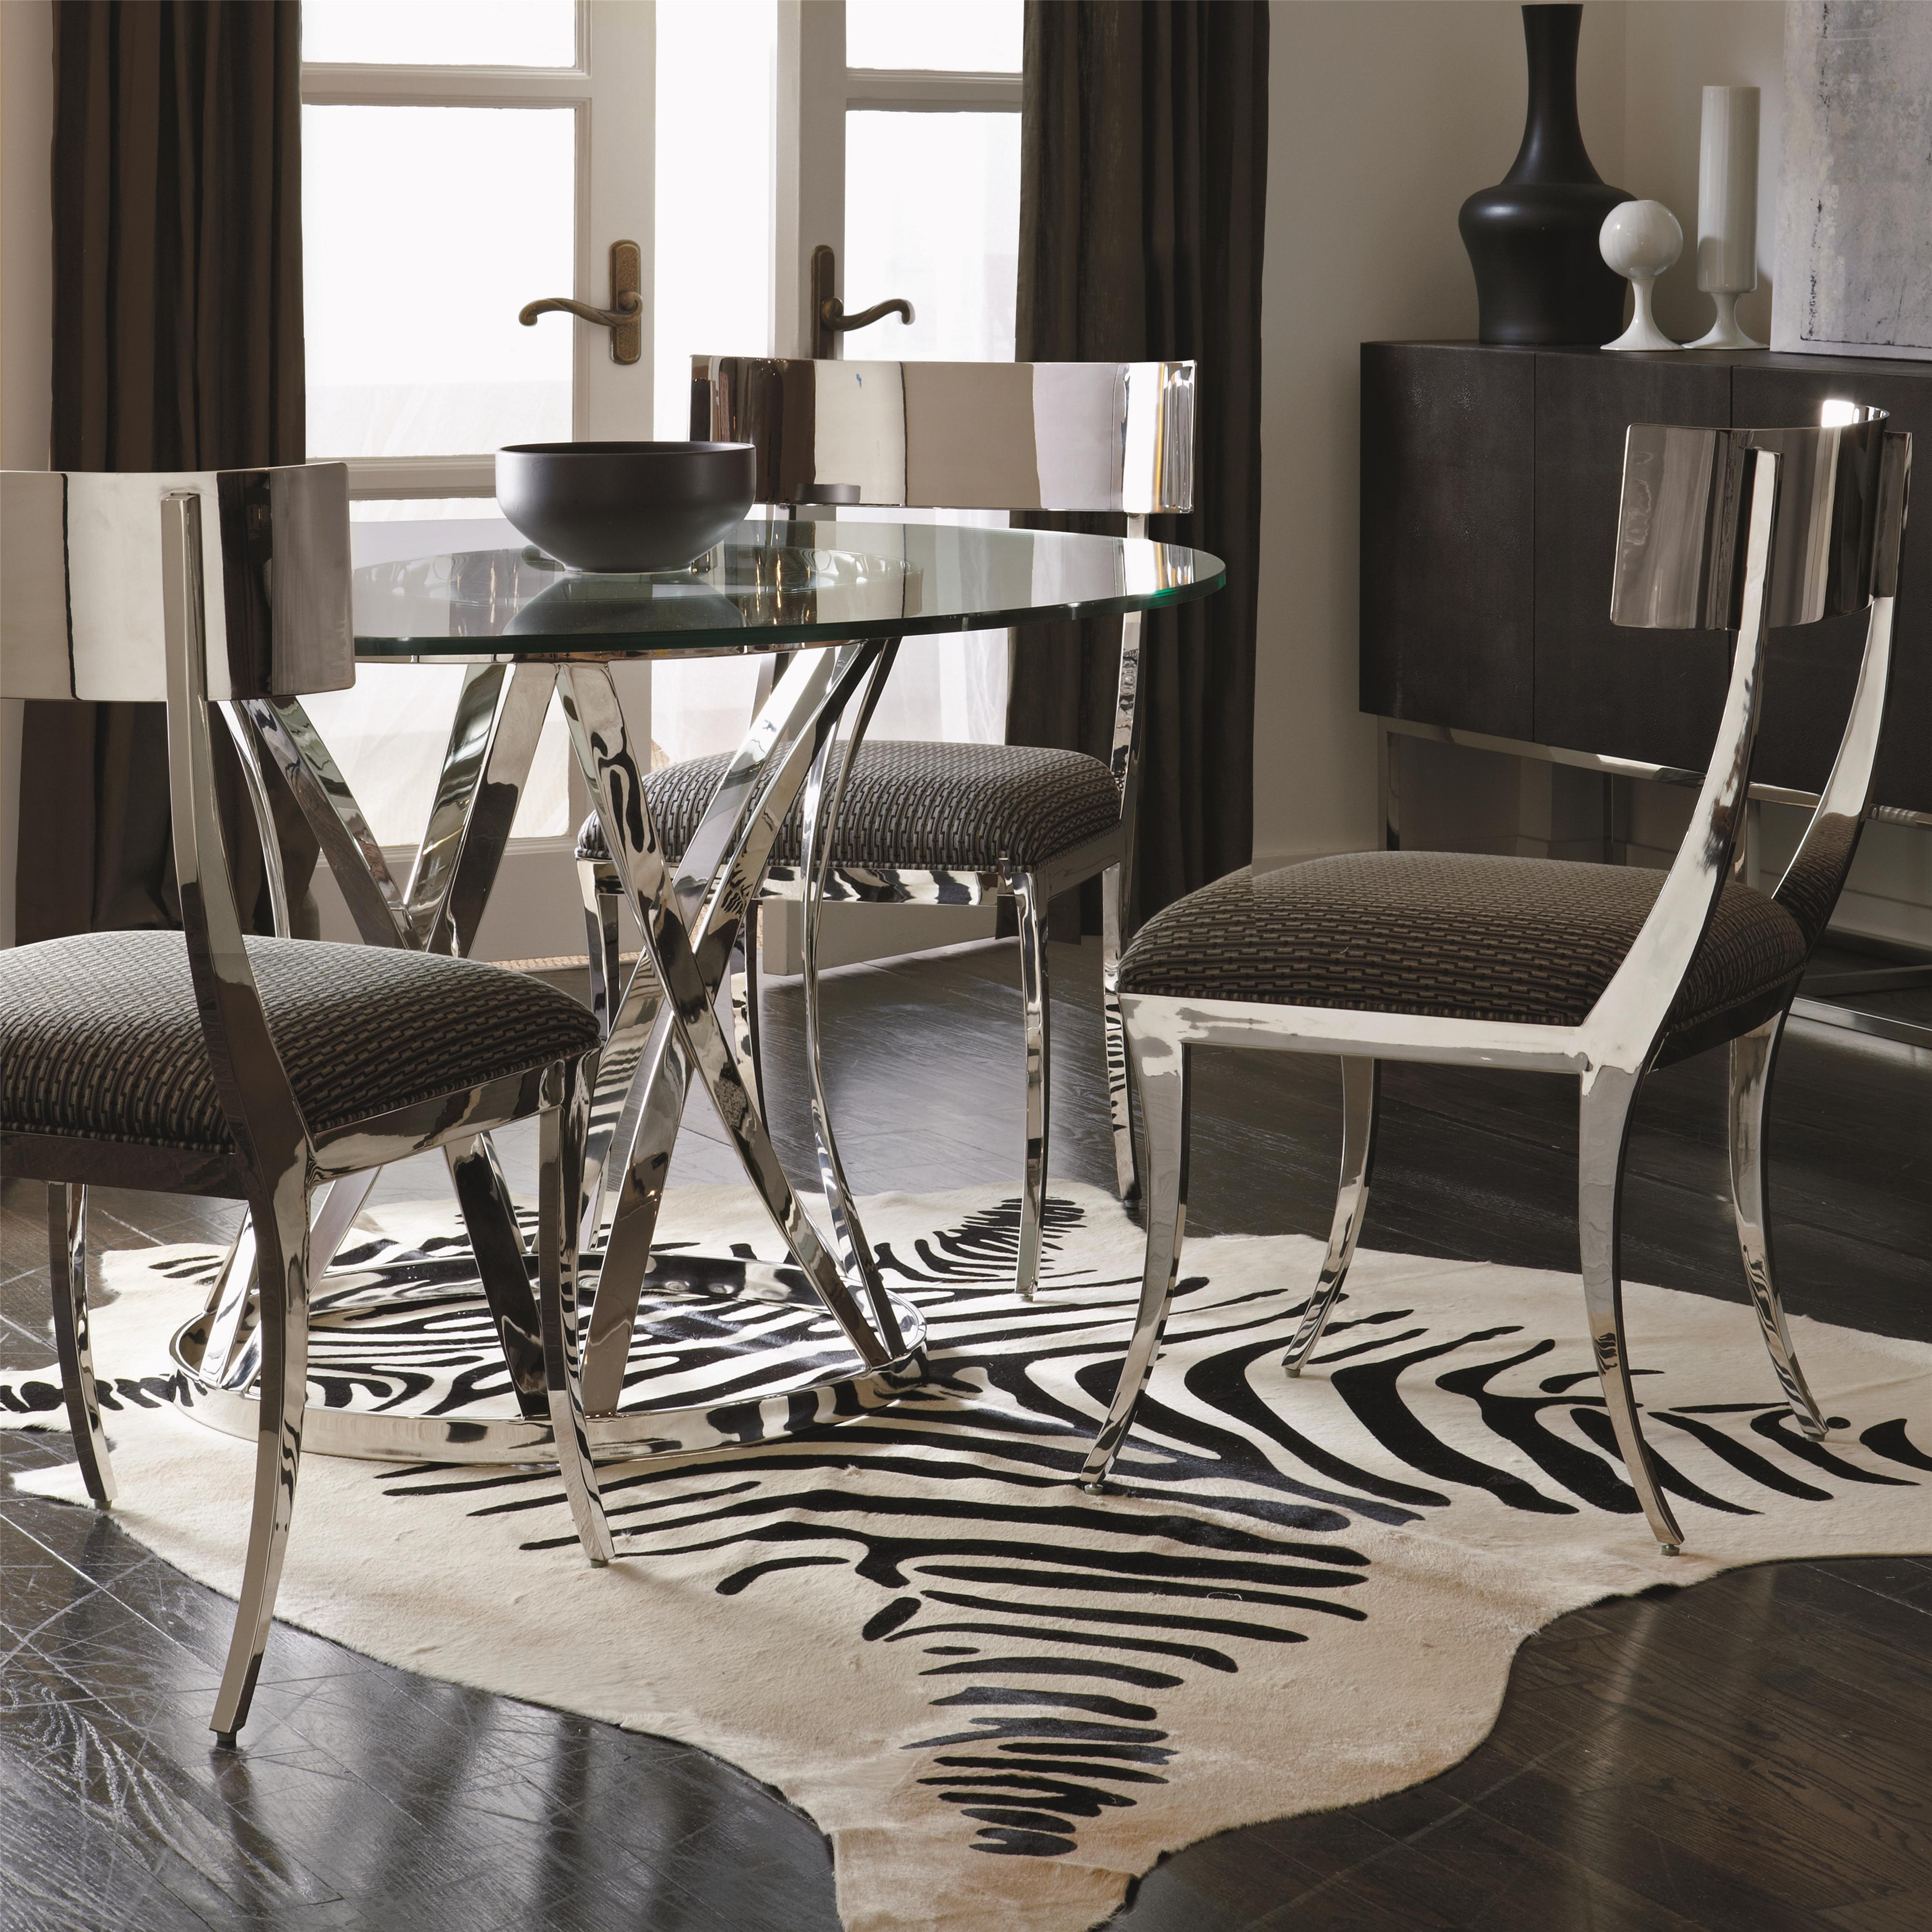 Interiors - Gustav Table and Chair Set by Bernhardt at Baer's Furniture